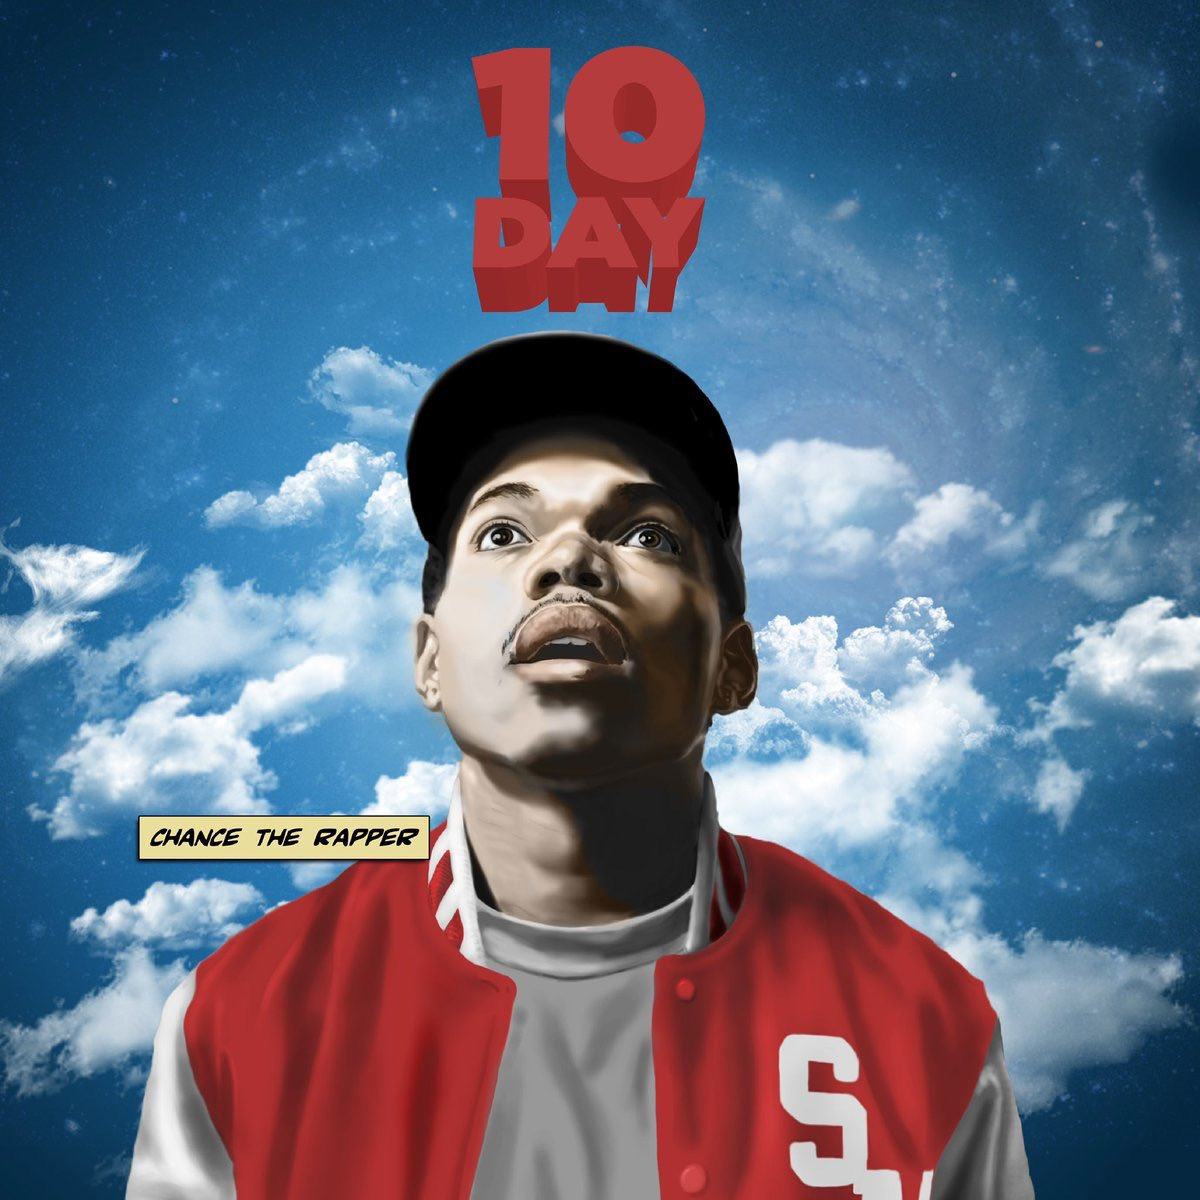 Chance The Rapper's mixtapes '10 Day' and 'Acid Rap' will be available on all streaming platforms at midnight